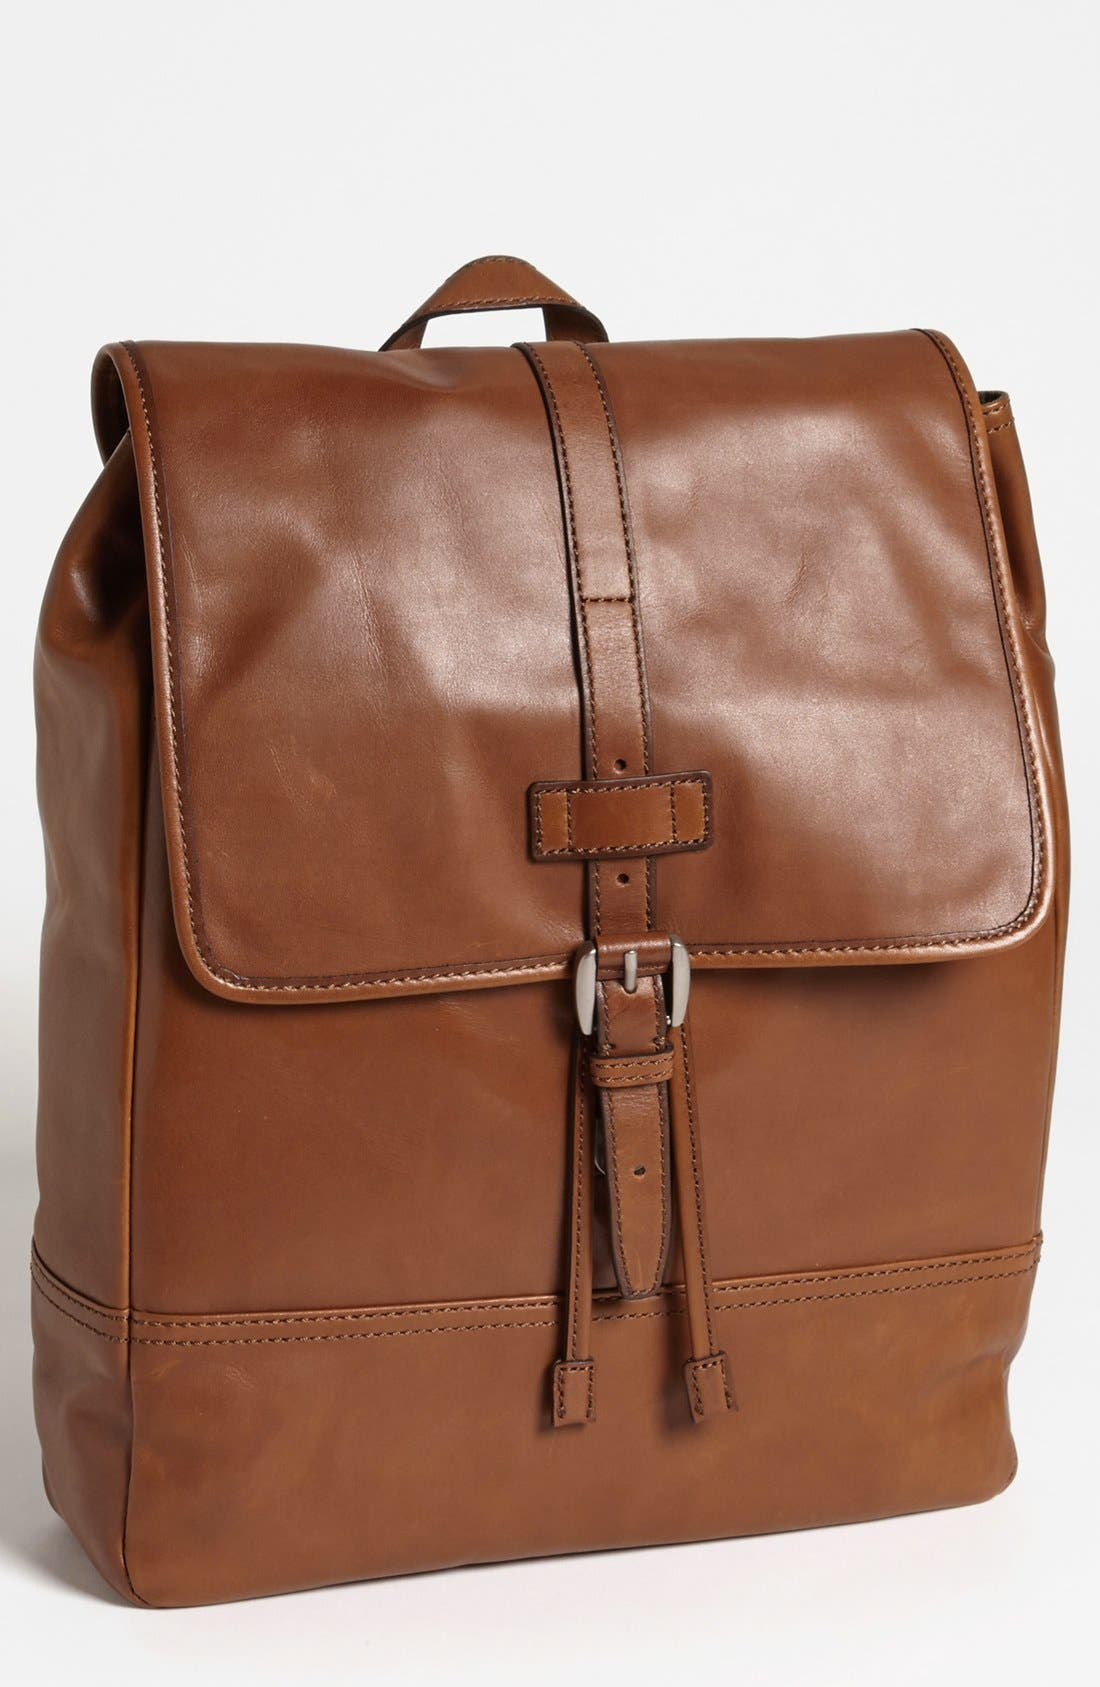 Alternate Image 1 Selected - Fossil 'Emerson' Rucksack